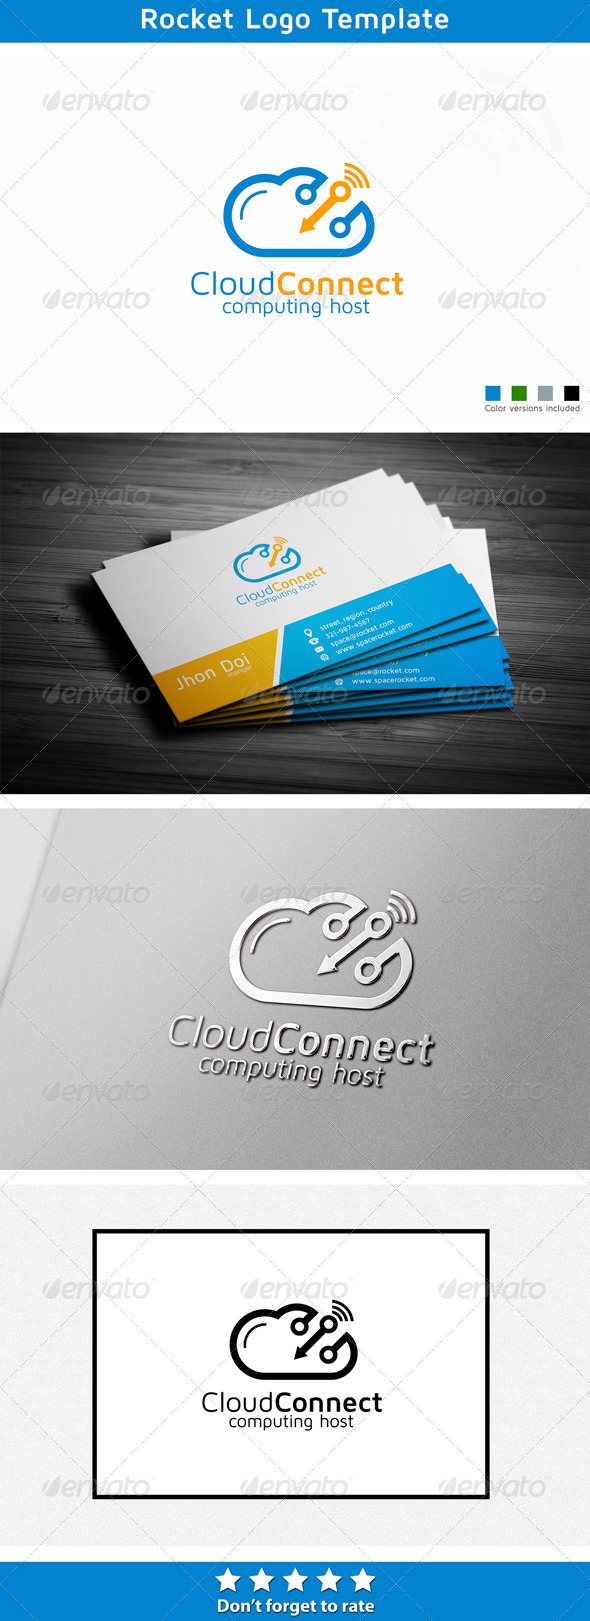 GraphicRiver Cloud Logo 5709383